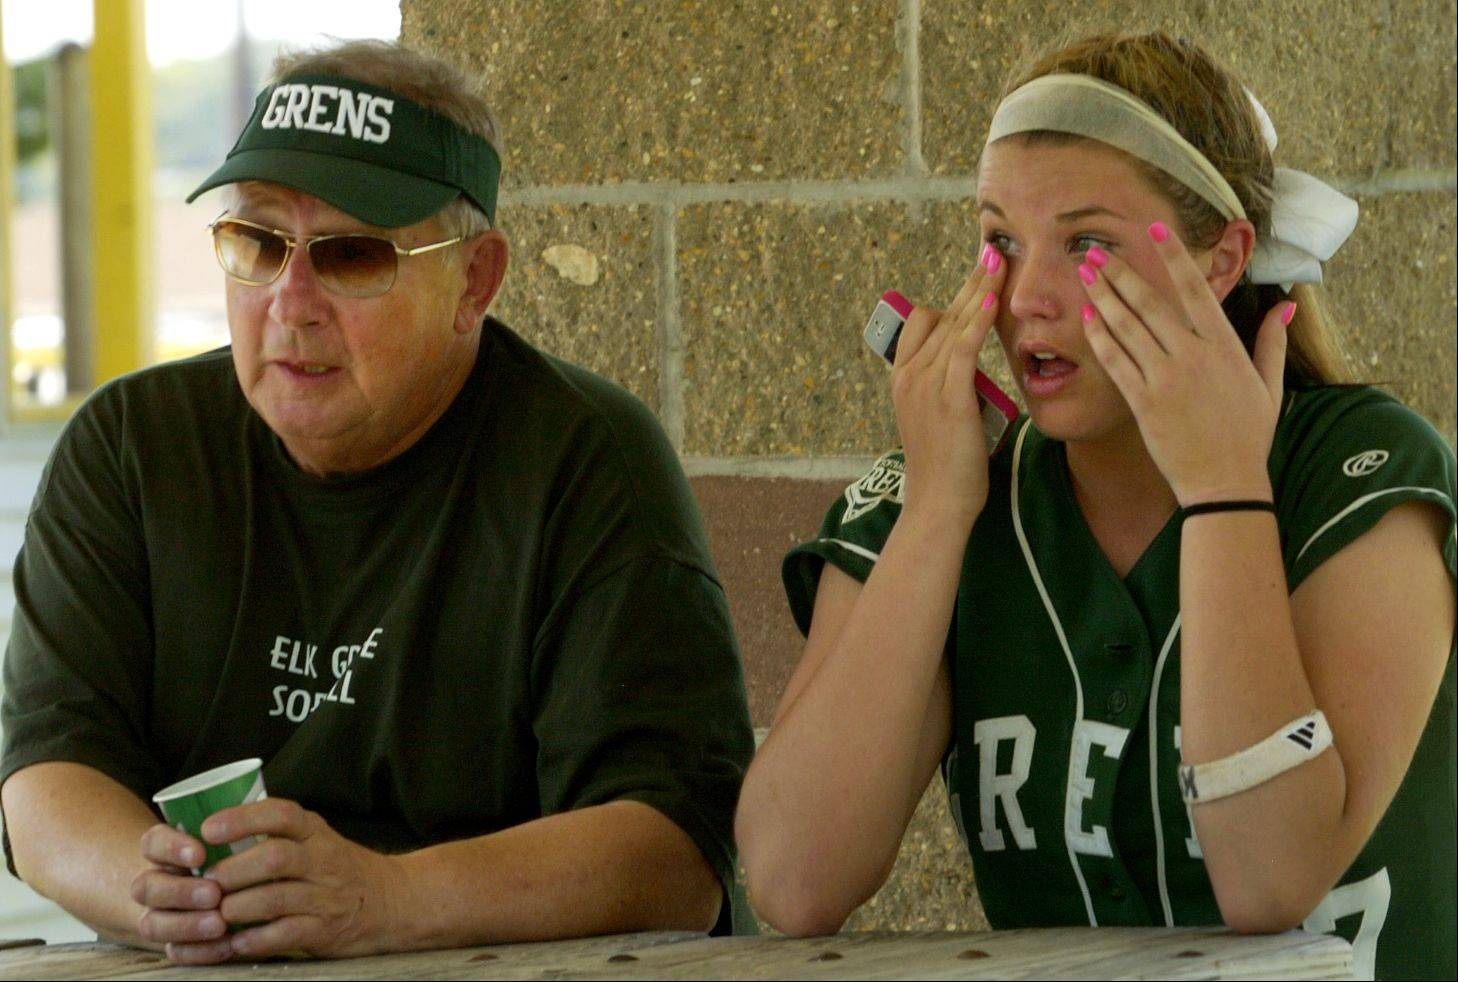 Elk Grove's Dani Goranson, with coach Ken Grams, wipes away tears after the Grens' loss to Marist in the Class 4A softball state semifinals.